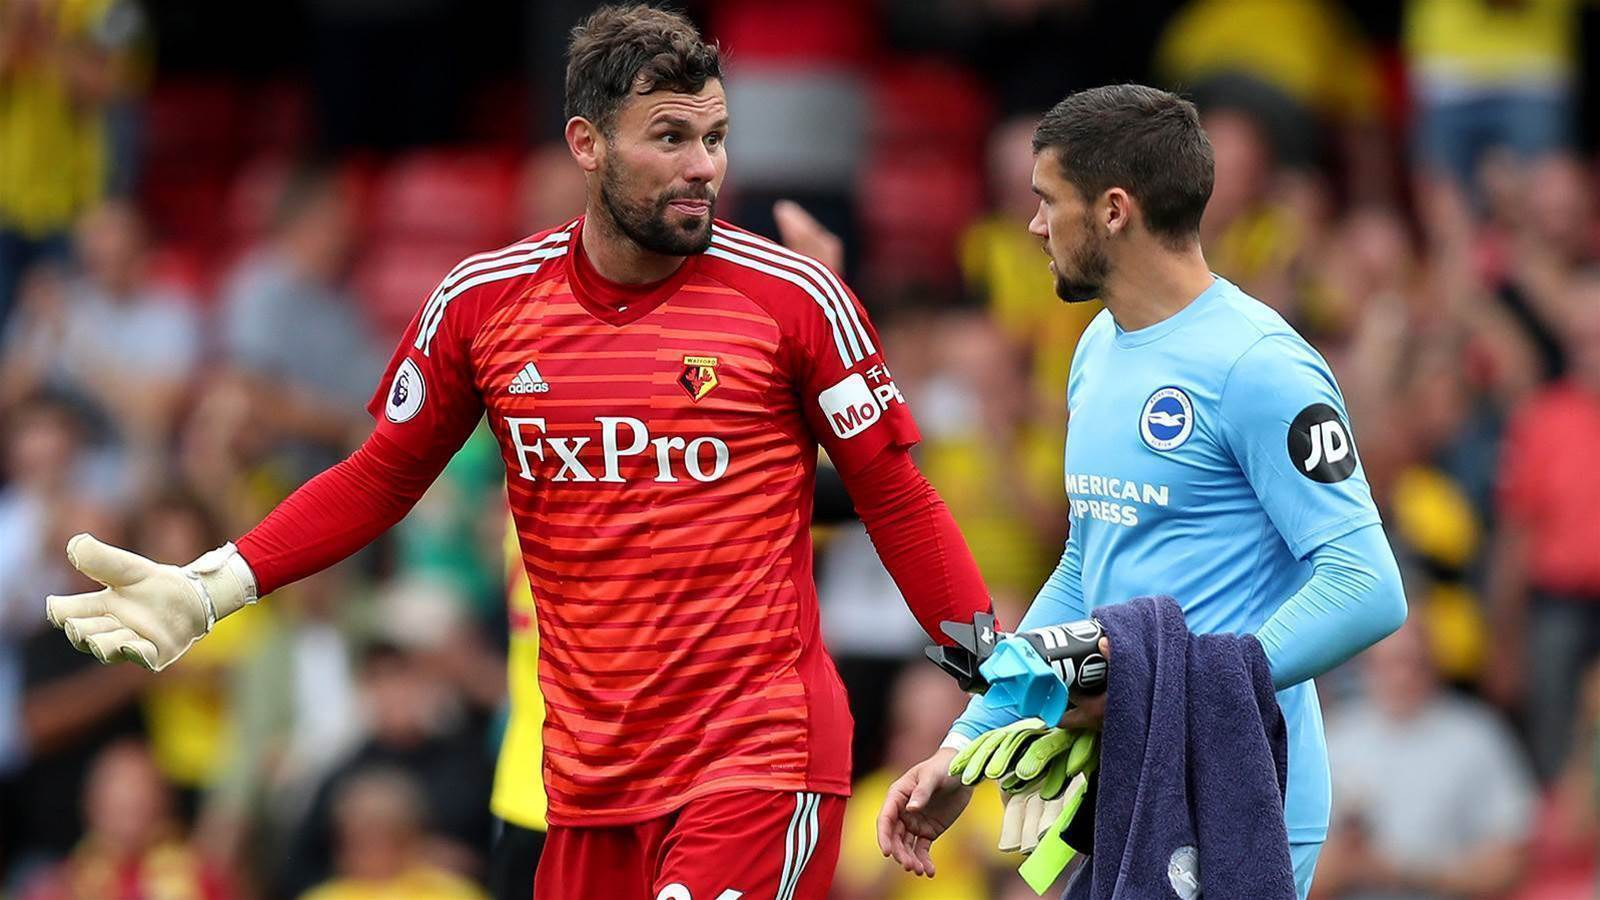 Ryan: English culture likes to be critical of keepers